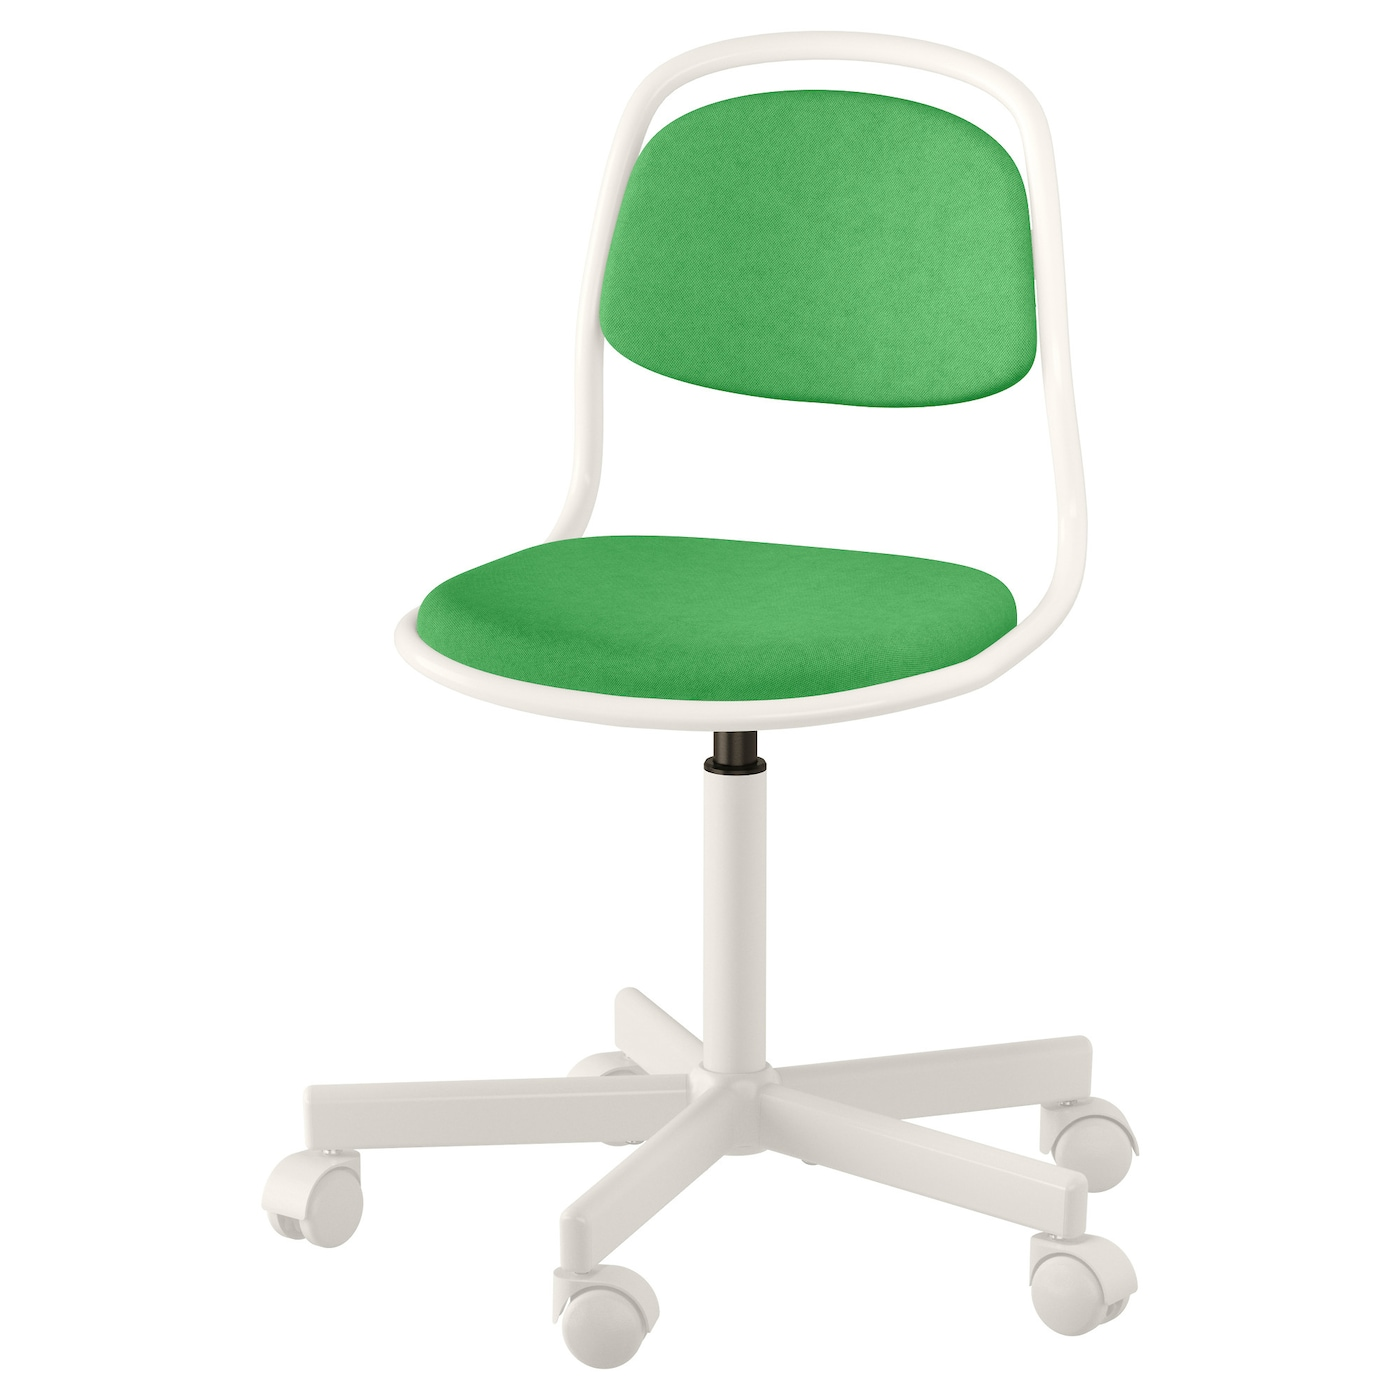 rfj ll chaise de bureau enfant blanc vissle vert vif ikea. Black Bedroom Furniture Sets. Home Design Ideas